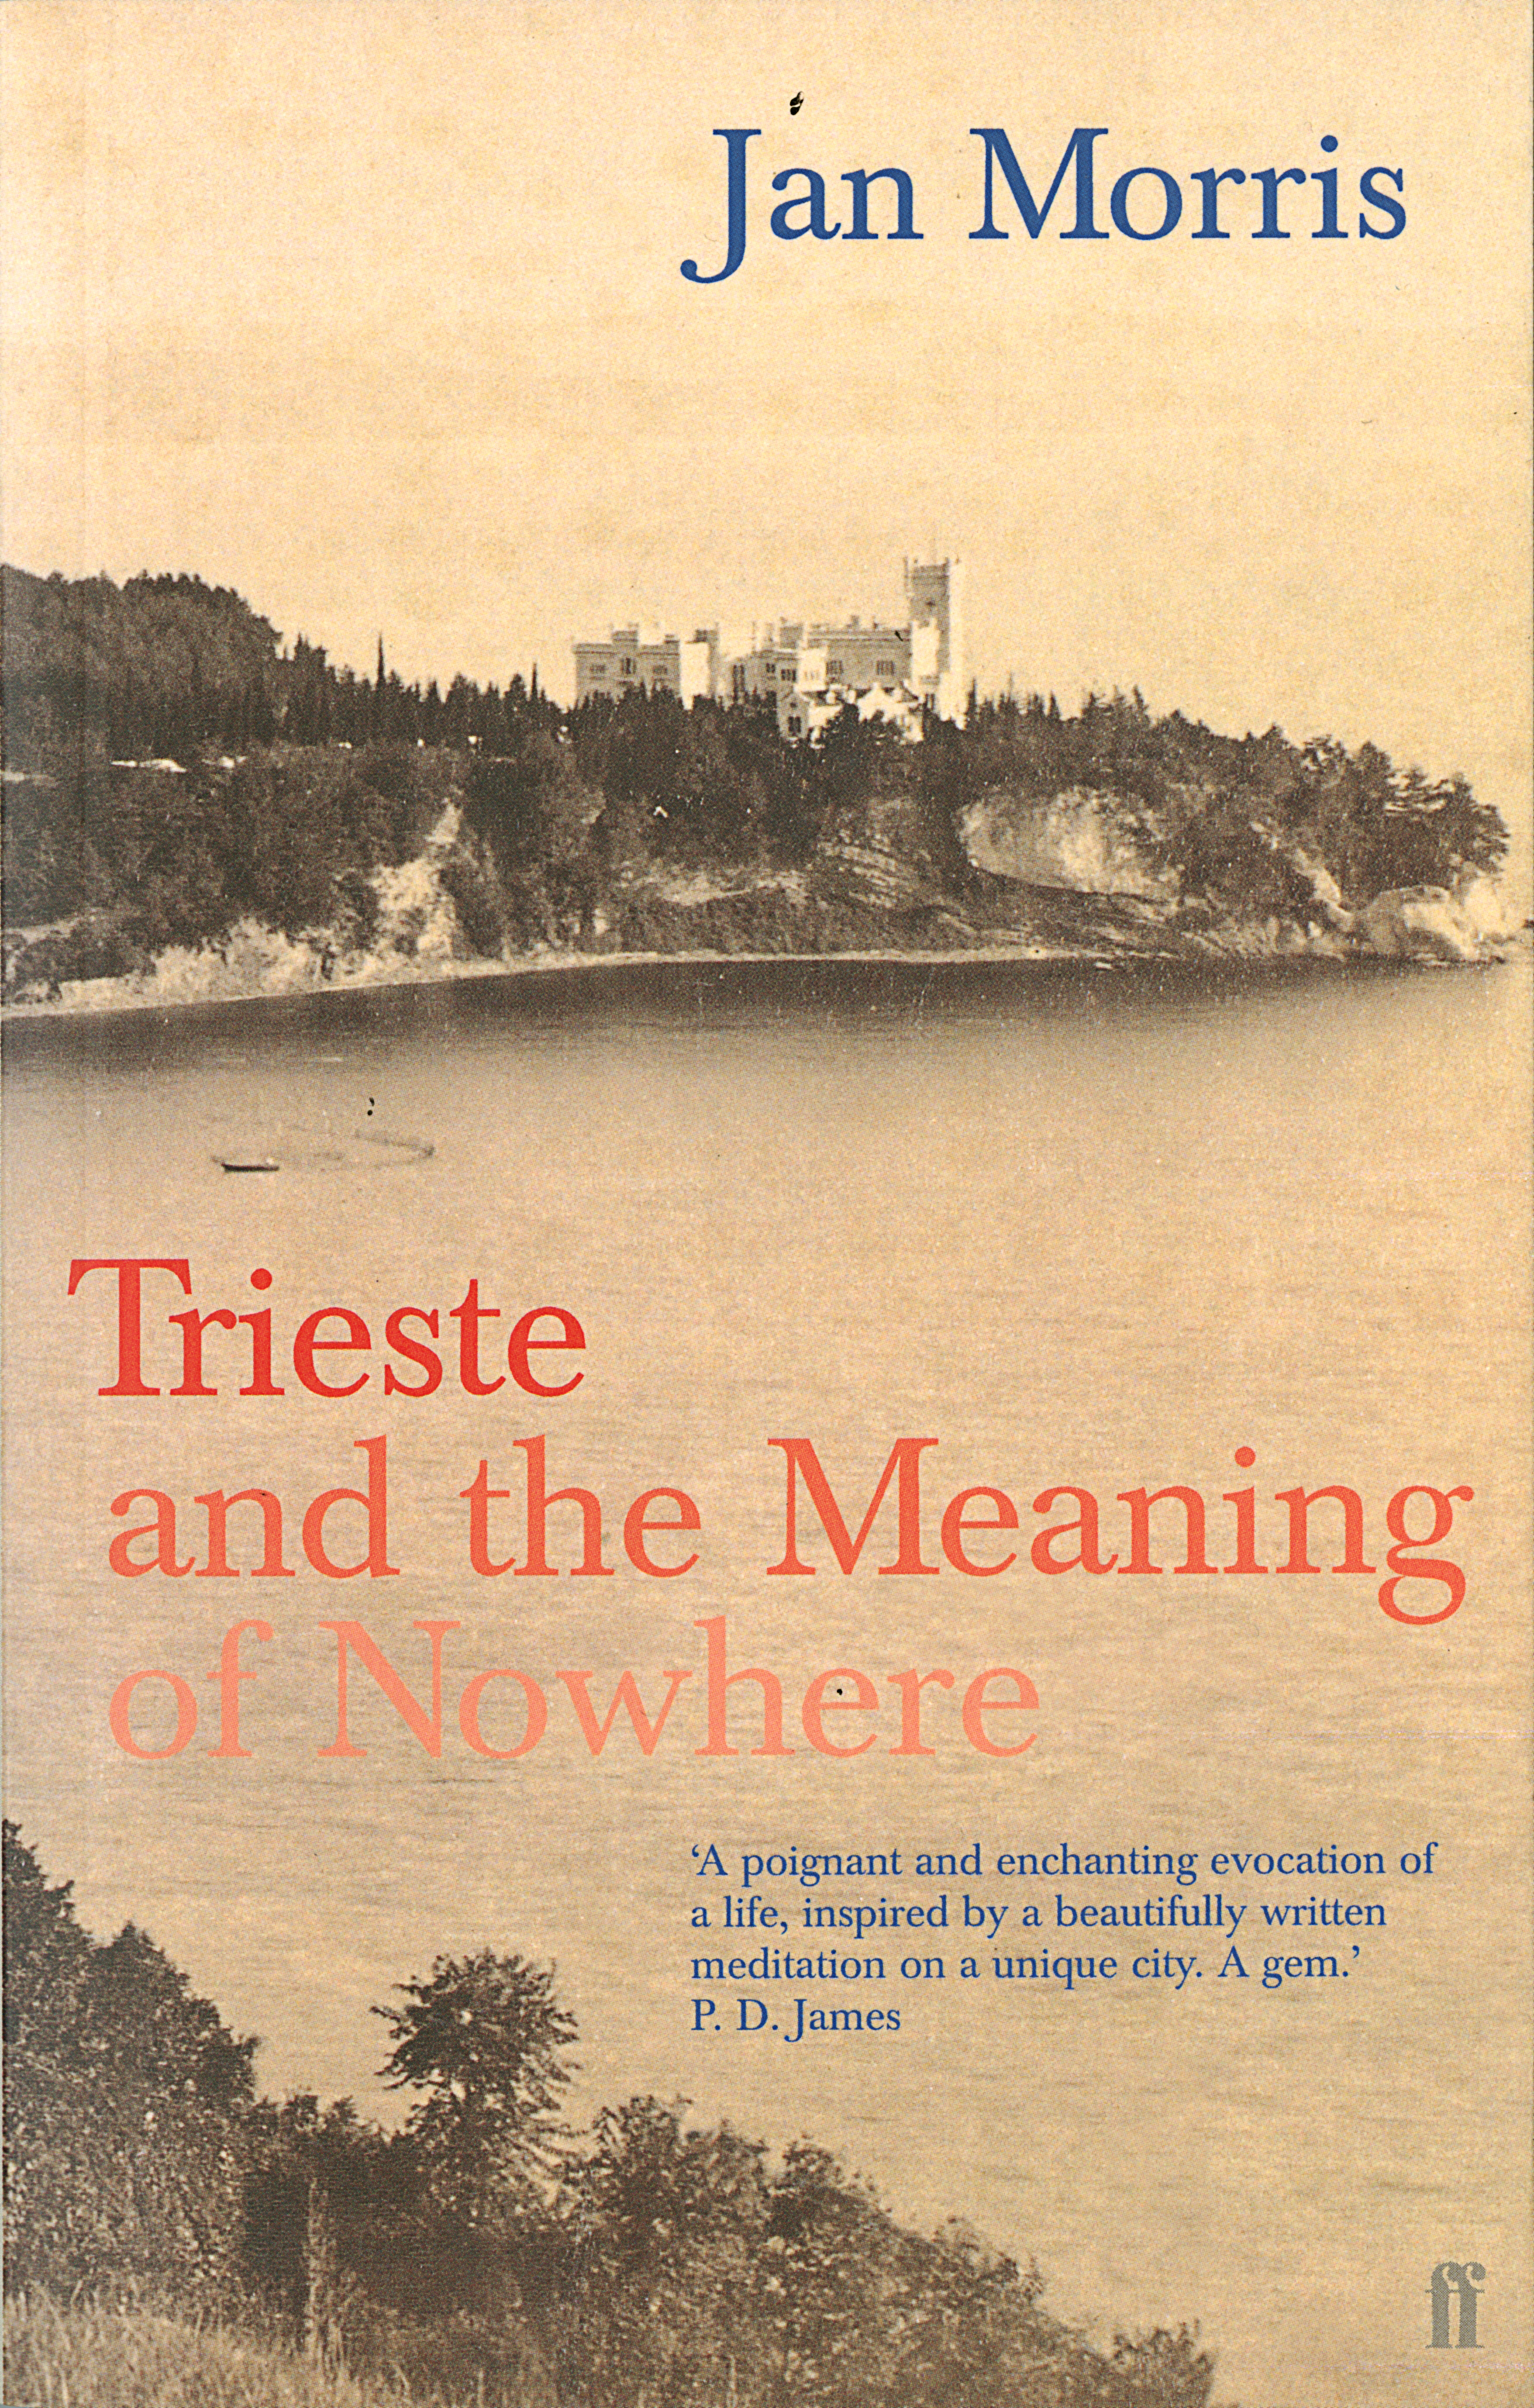 Trieste by Jan Morris, ISBN: 9780571204687